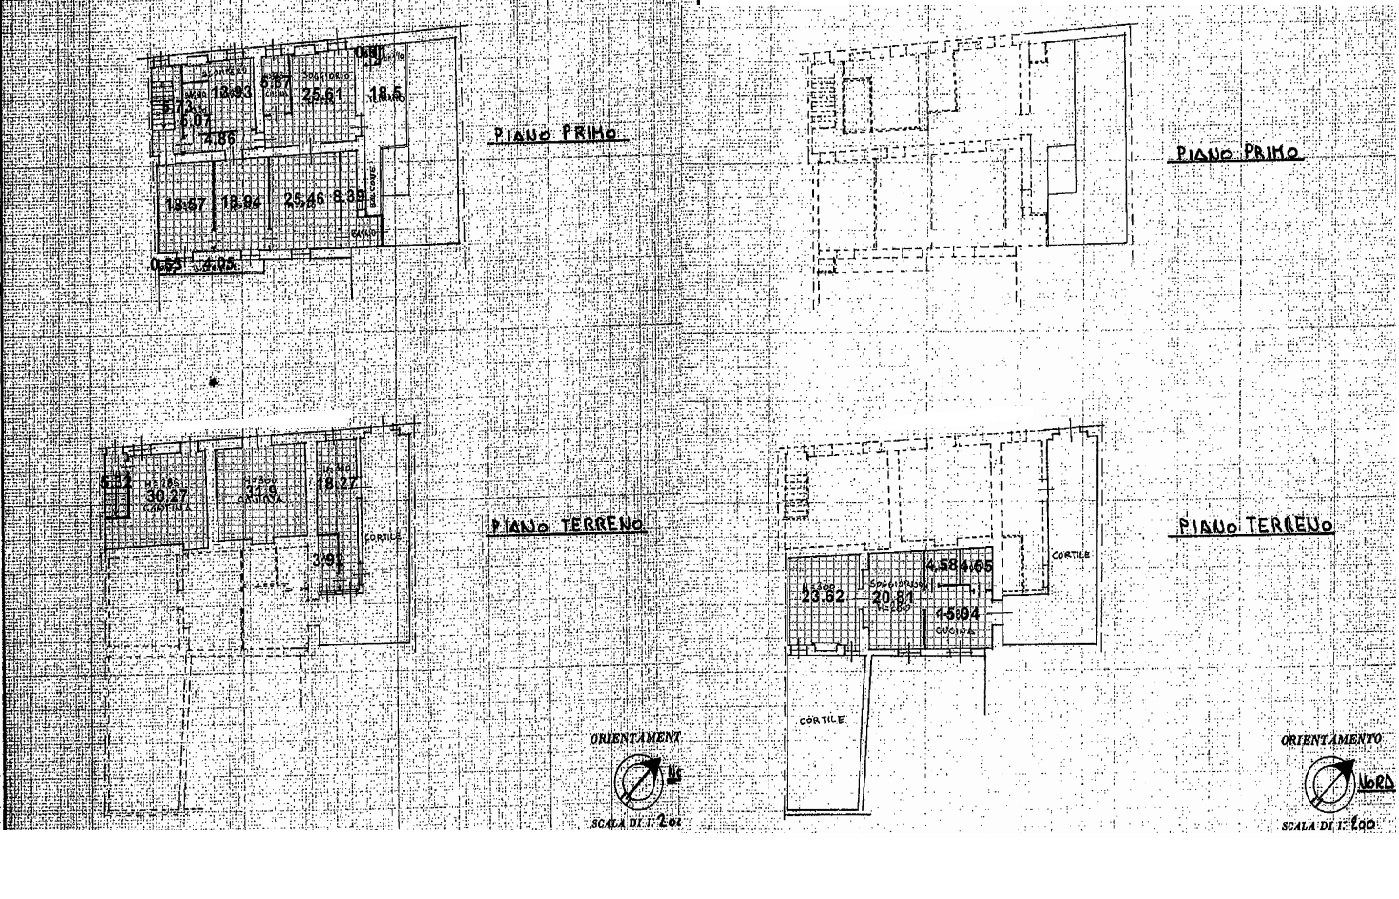 Floorplan of the house and courtyard